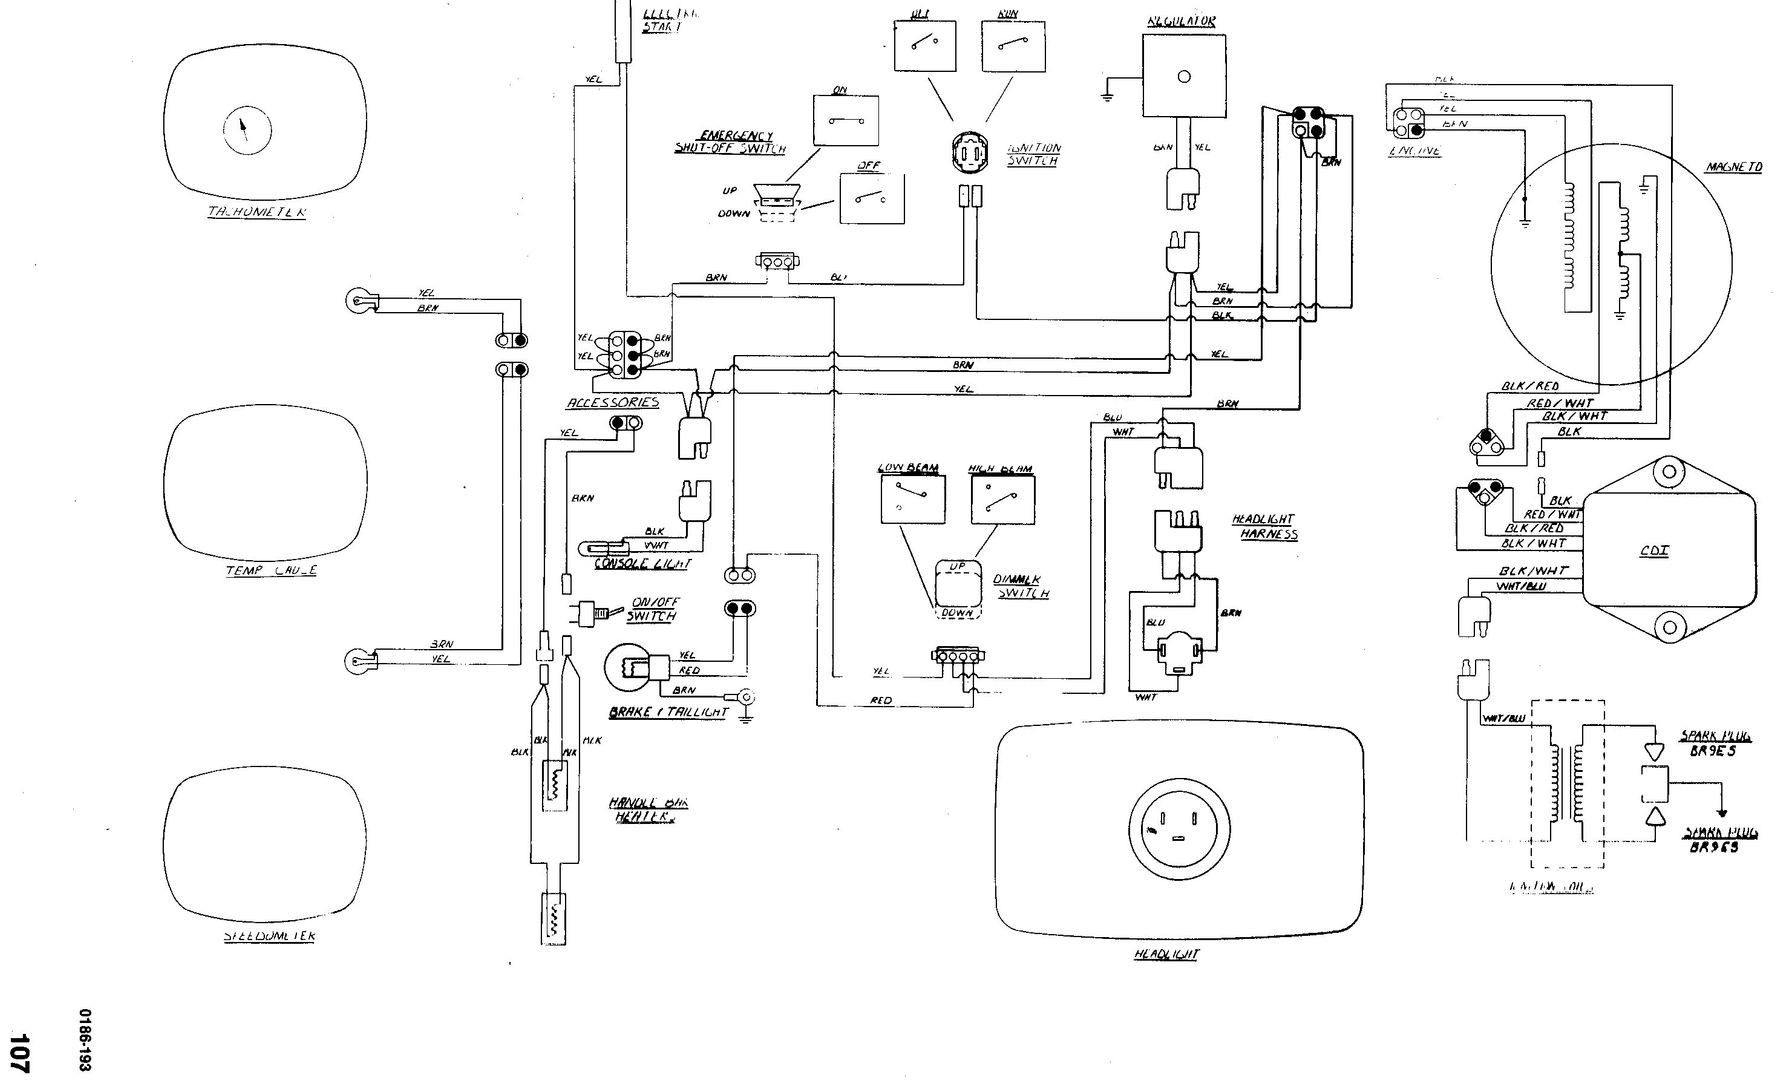 New Wiring Diagram For Silvertone Guitar With Images